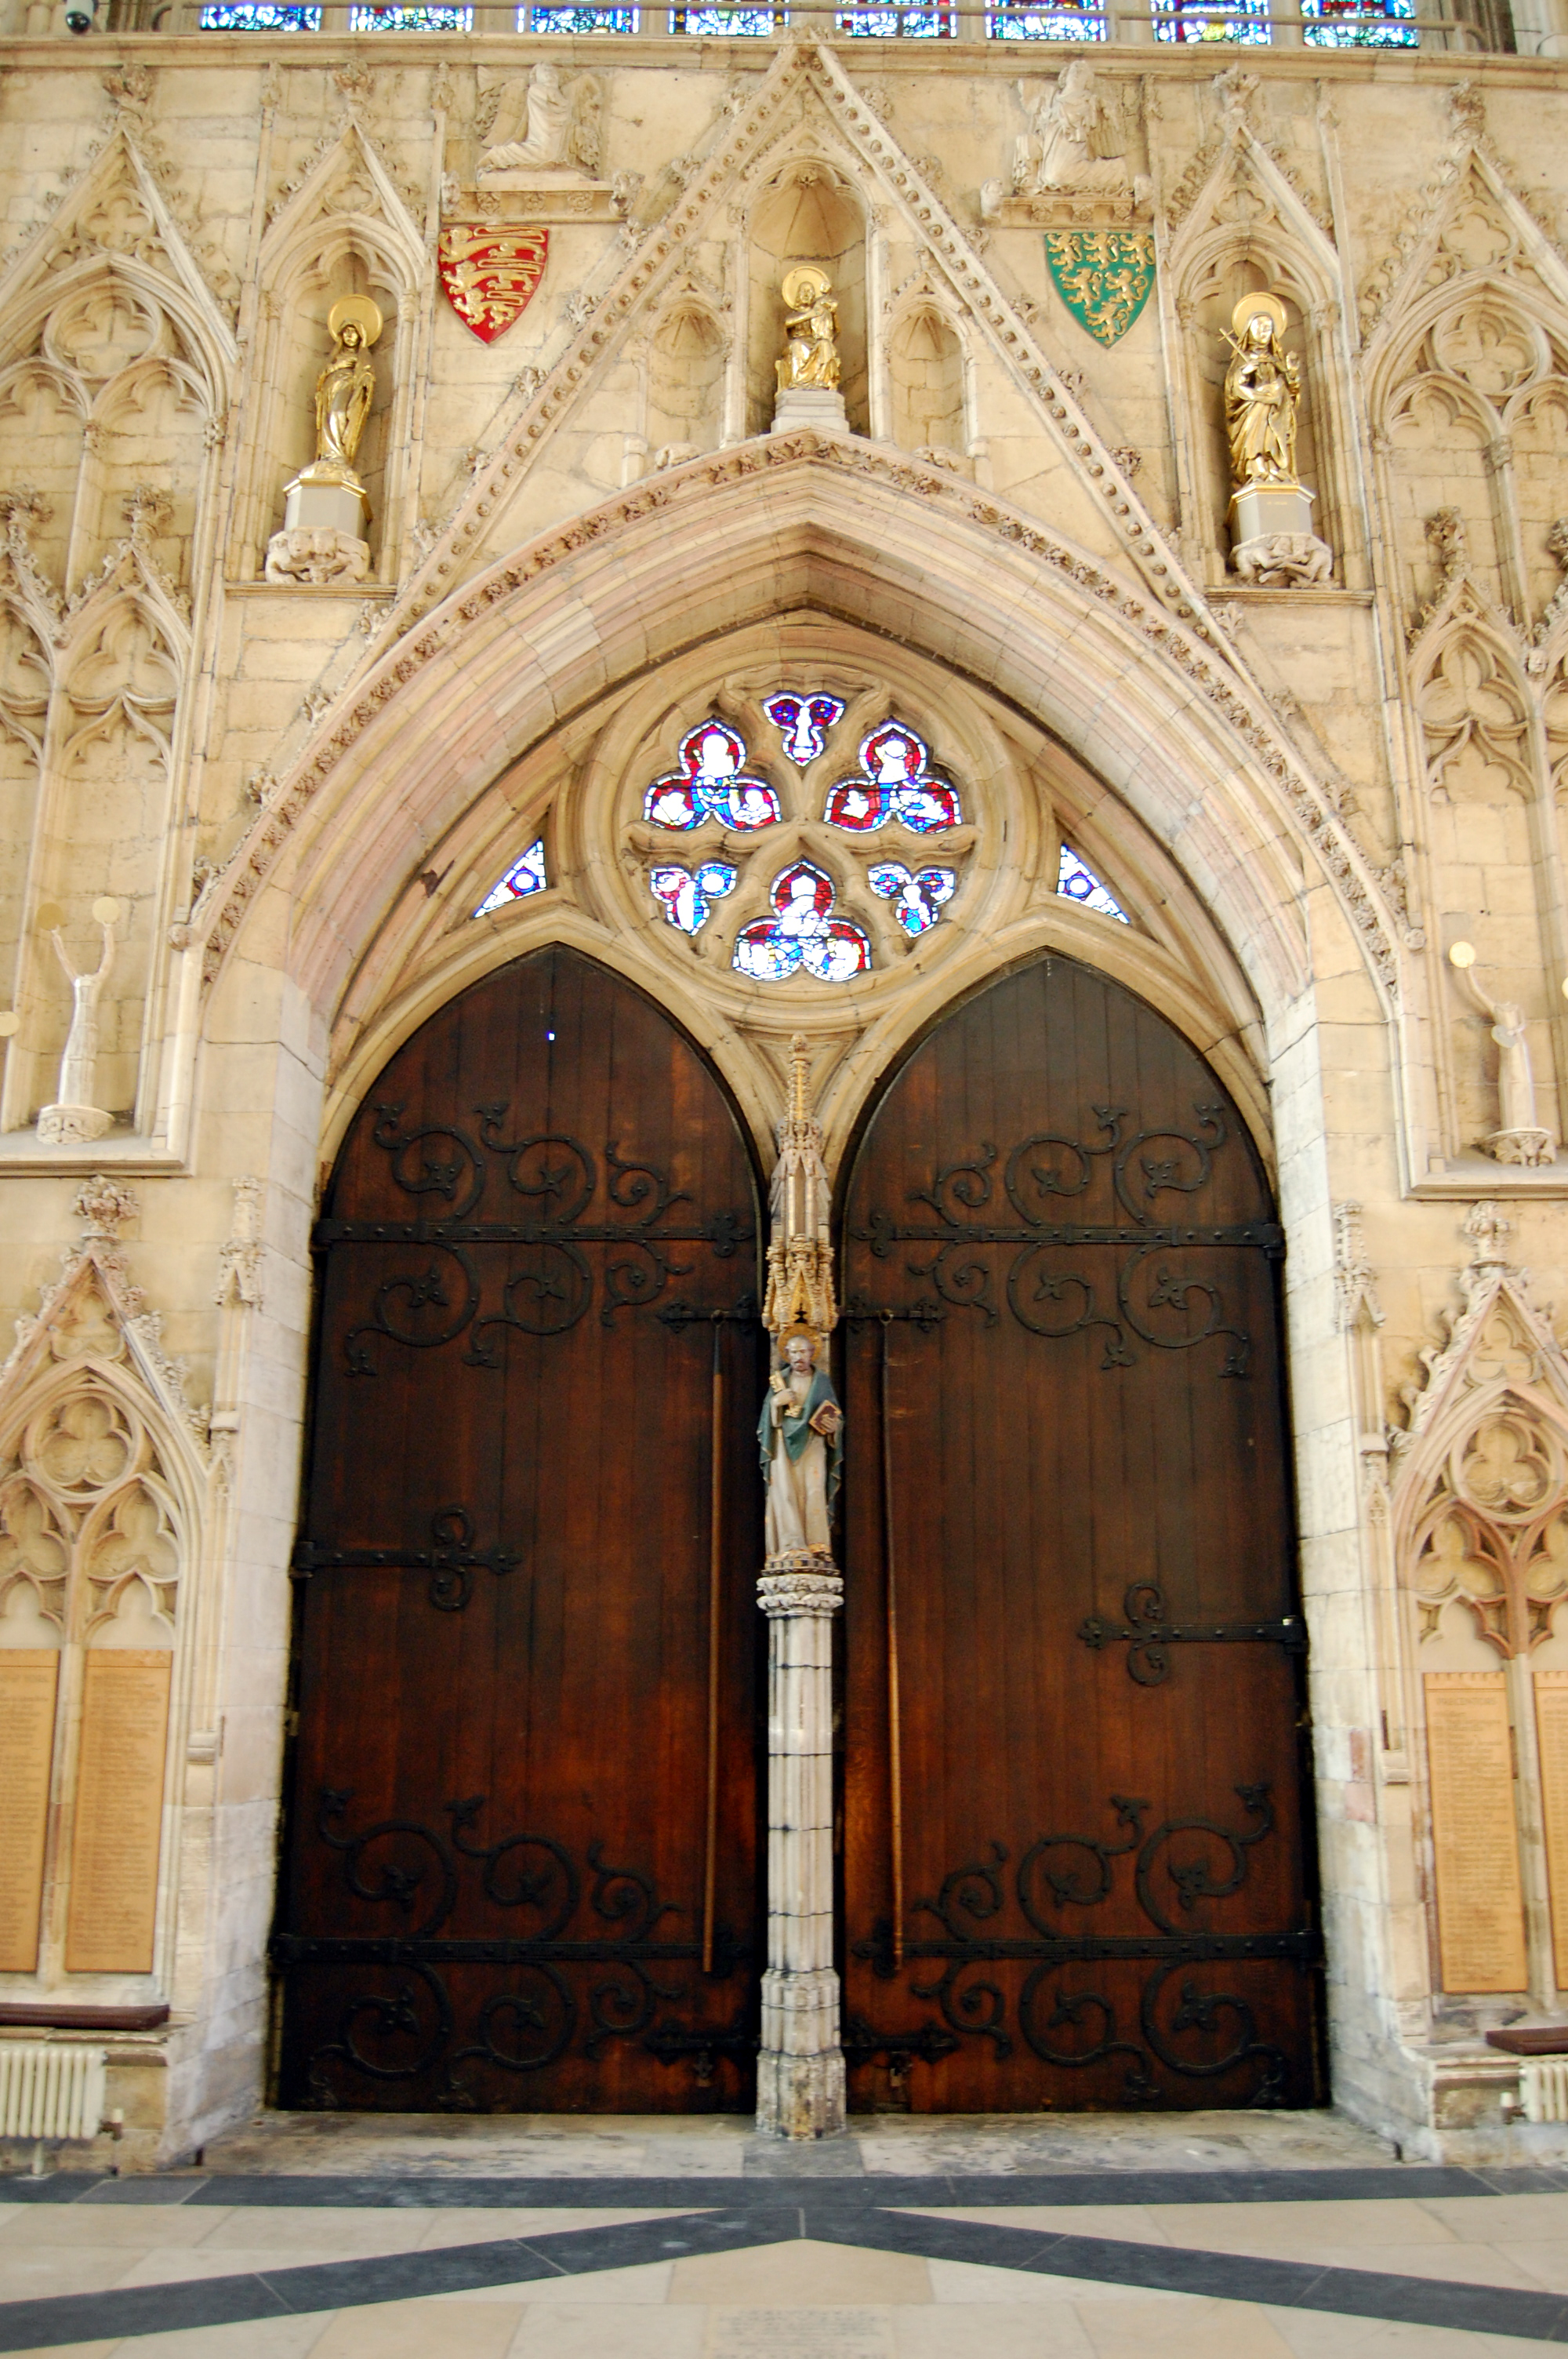 File:York Minster main entrance door St Peter.jpg & File:York Minster main entrance door St Peter.jpg - Wikimedia Commons Pezcame.Com